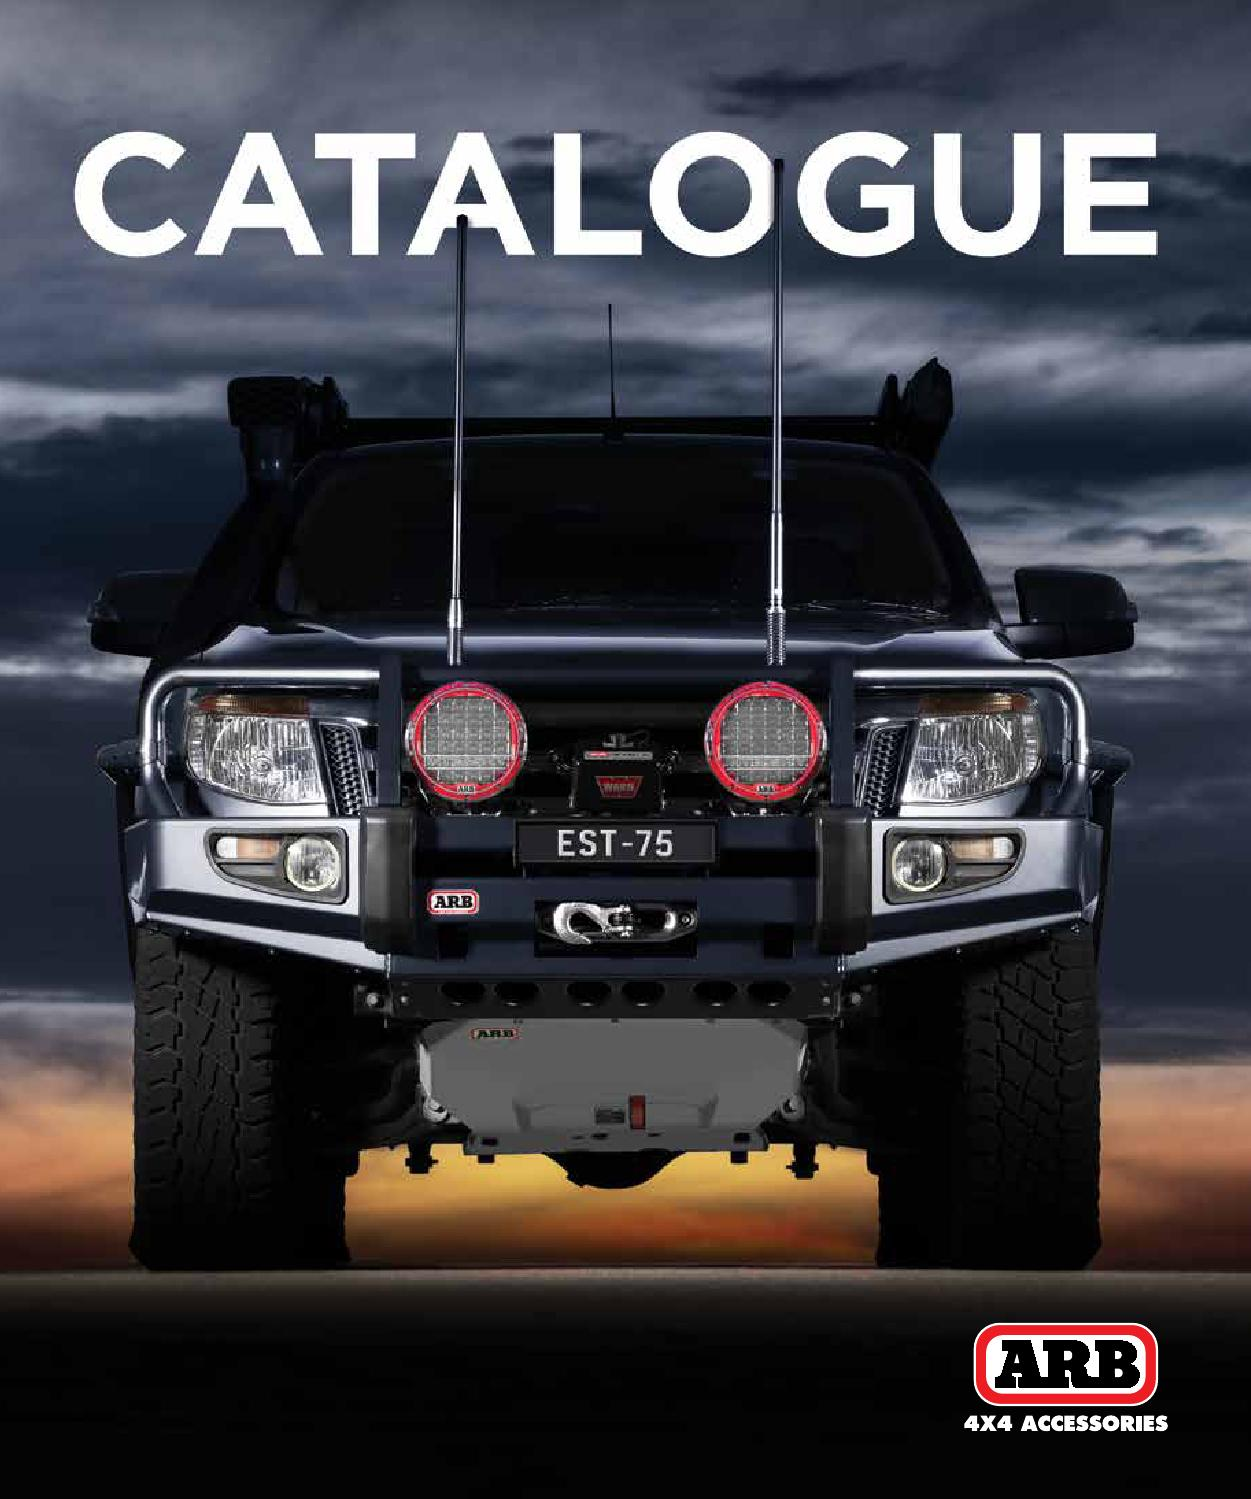 & ARB Catalogue 2015 by ARB4x4 - issuu